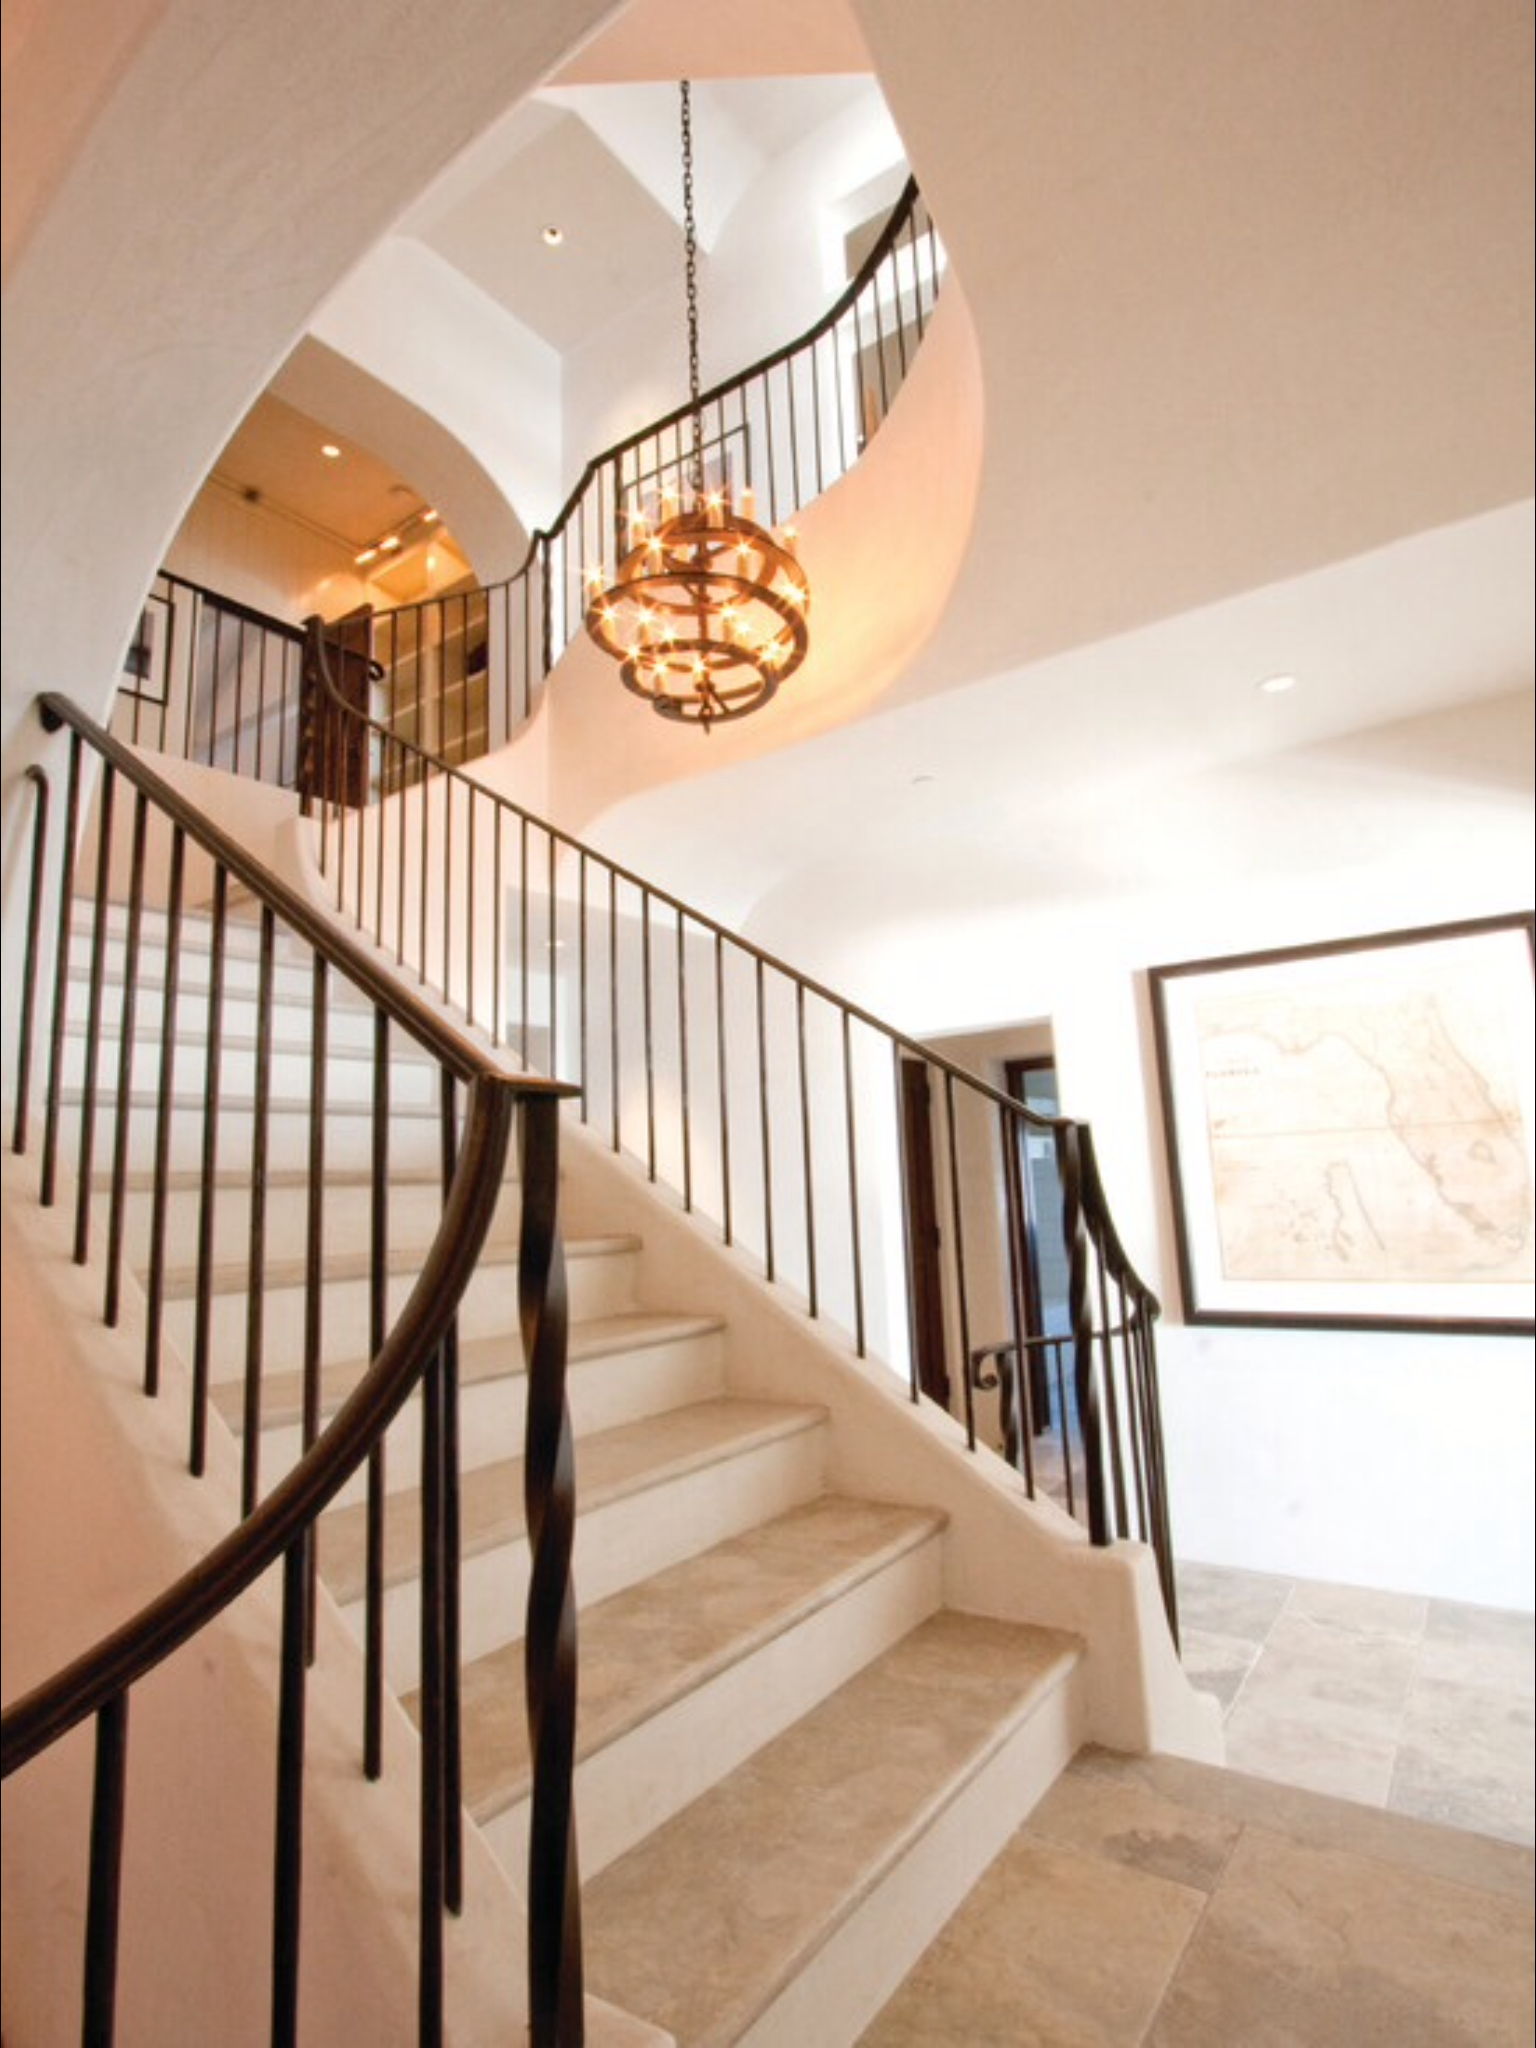 Home interior design staircase pin by svelteone on home decor  pinterest